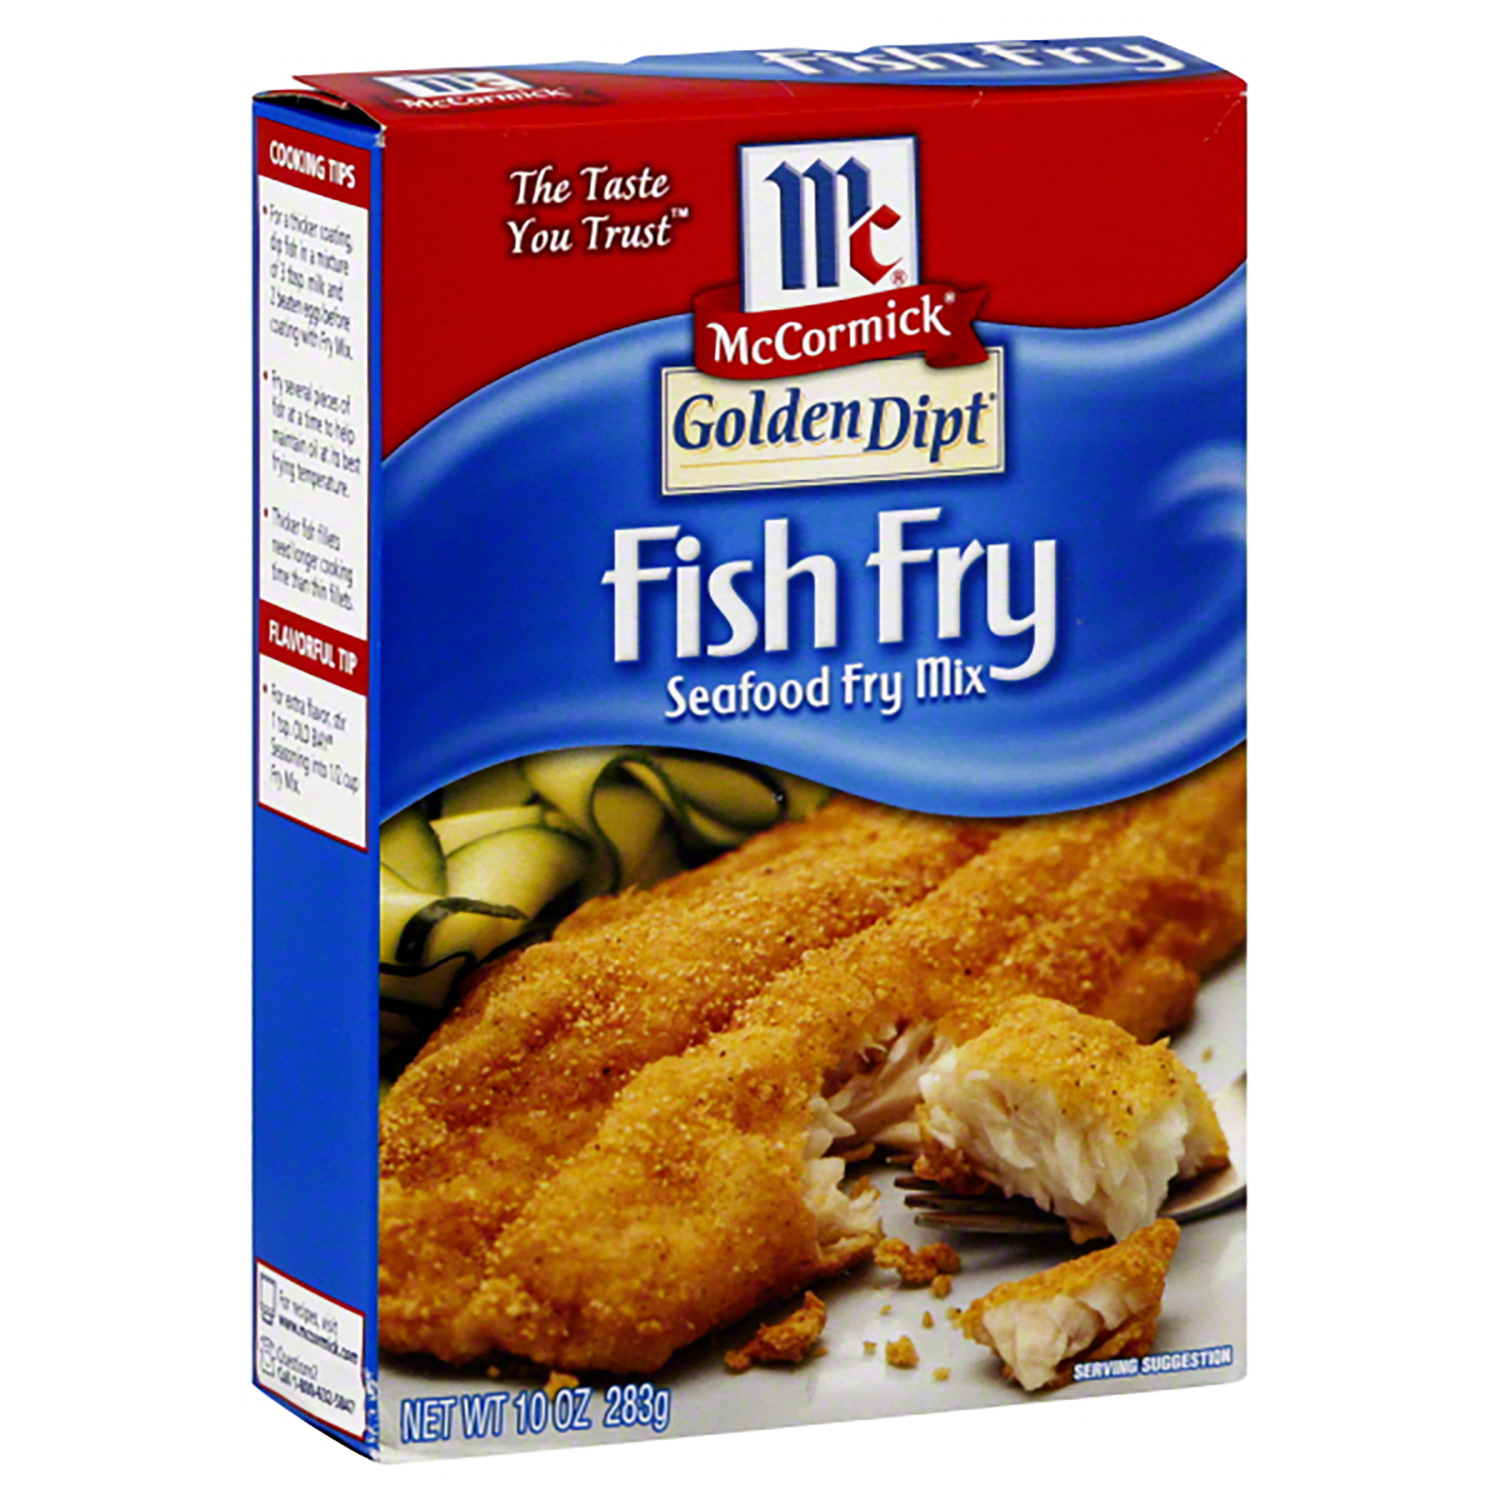 Fish fry mccormick brand stavis seafoods for How to season fish for frying